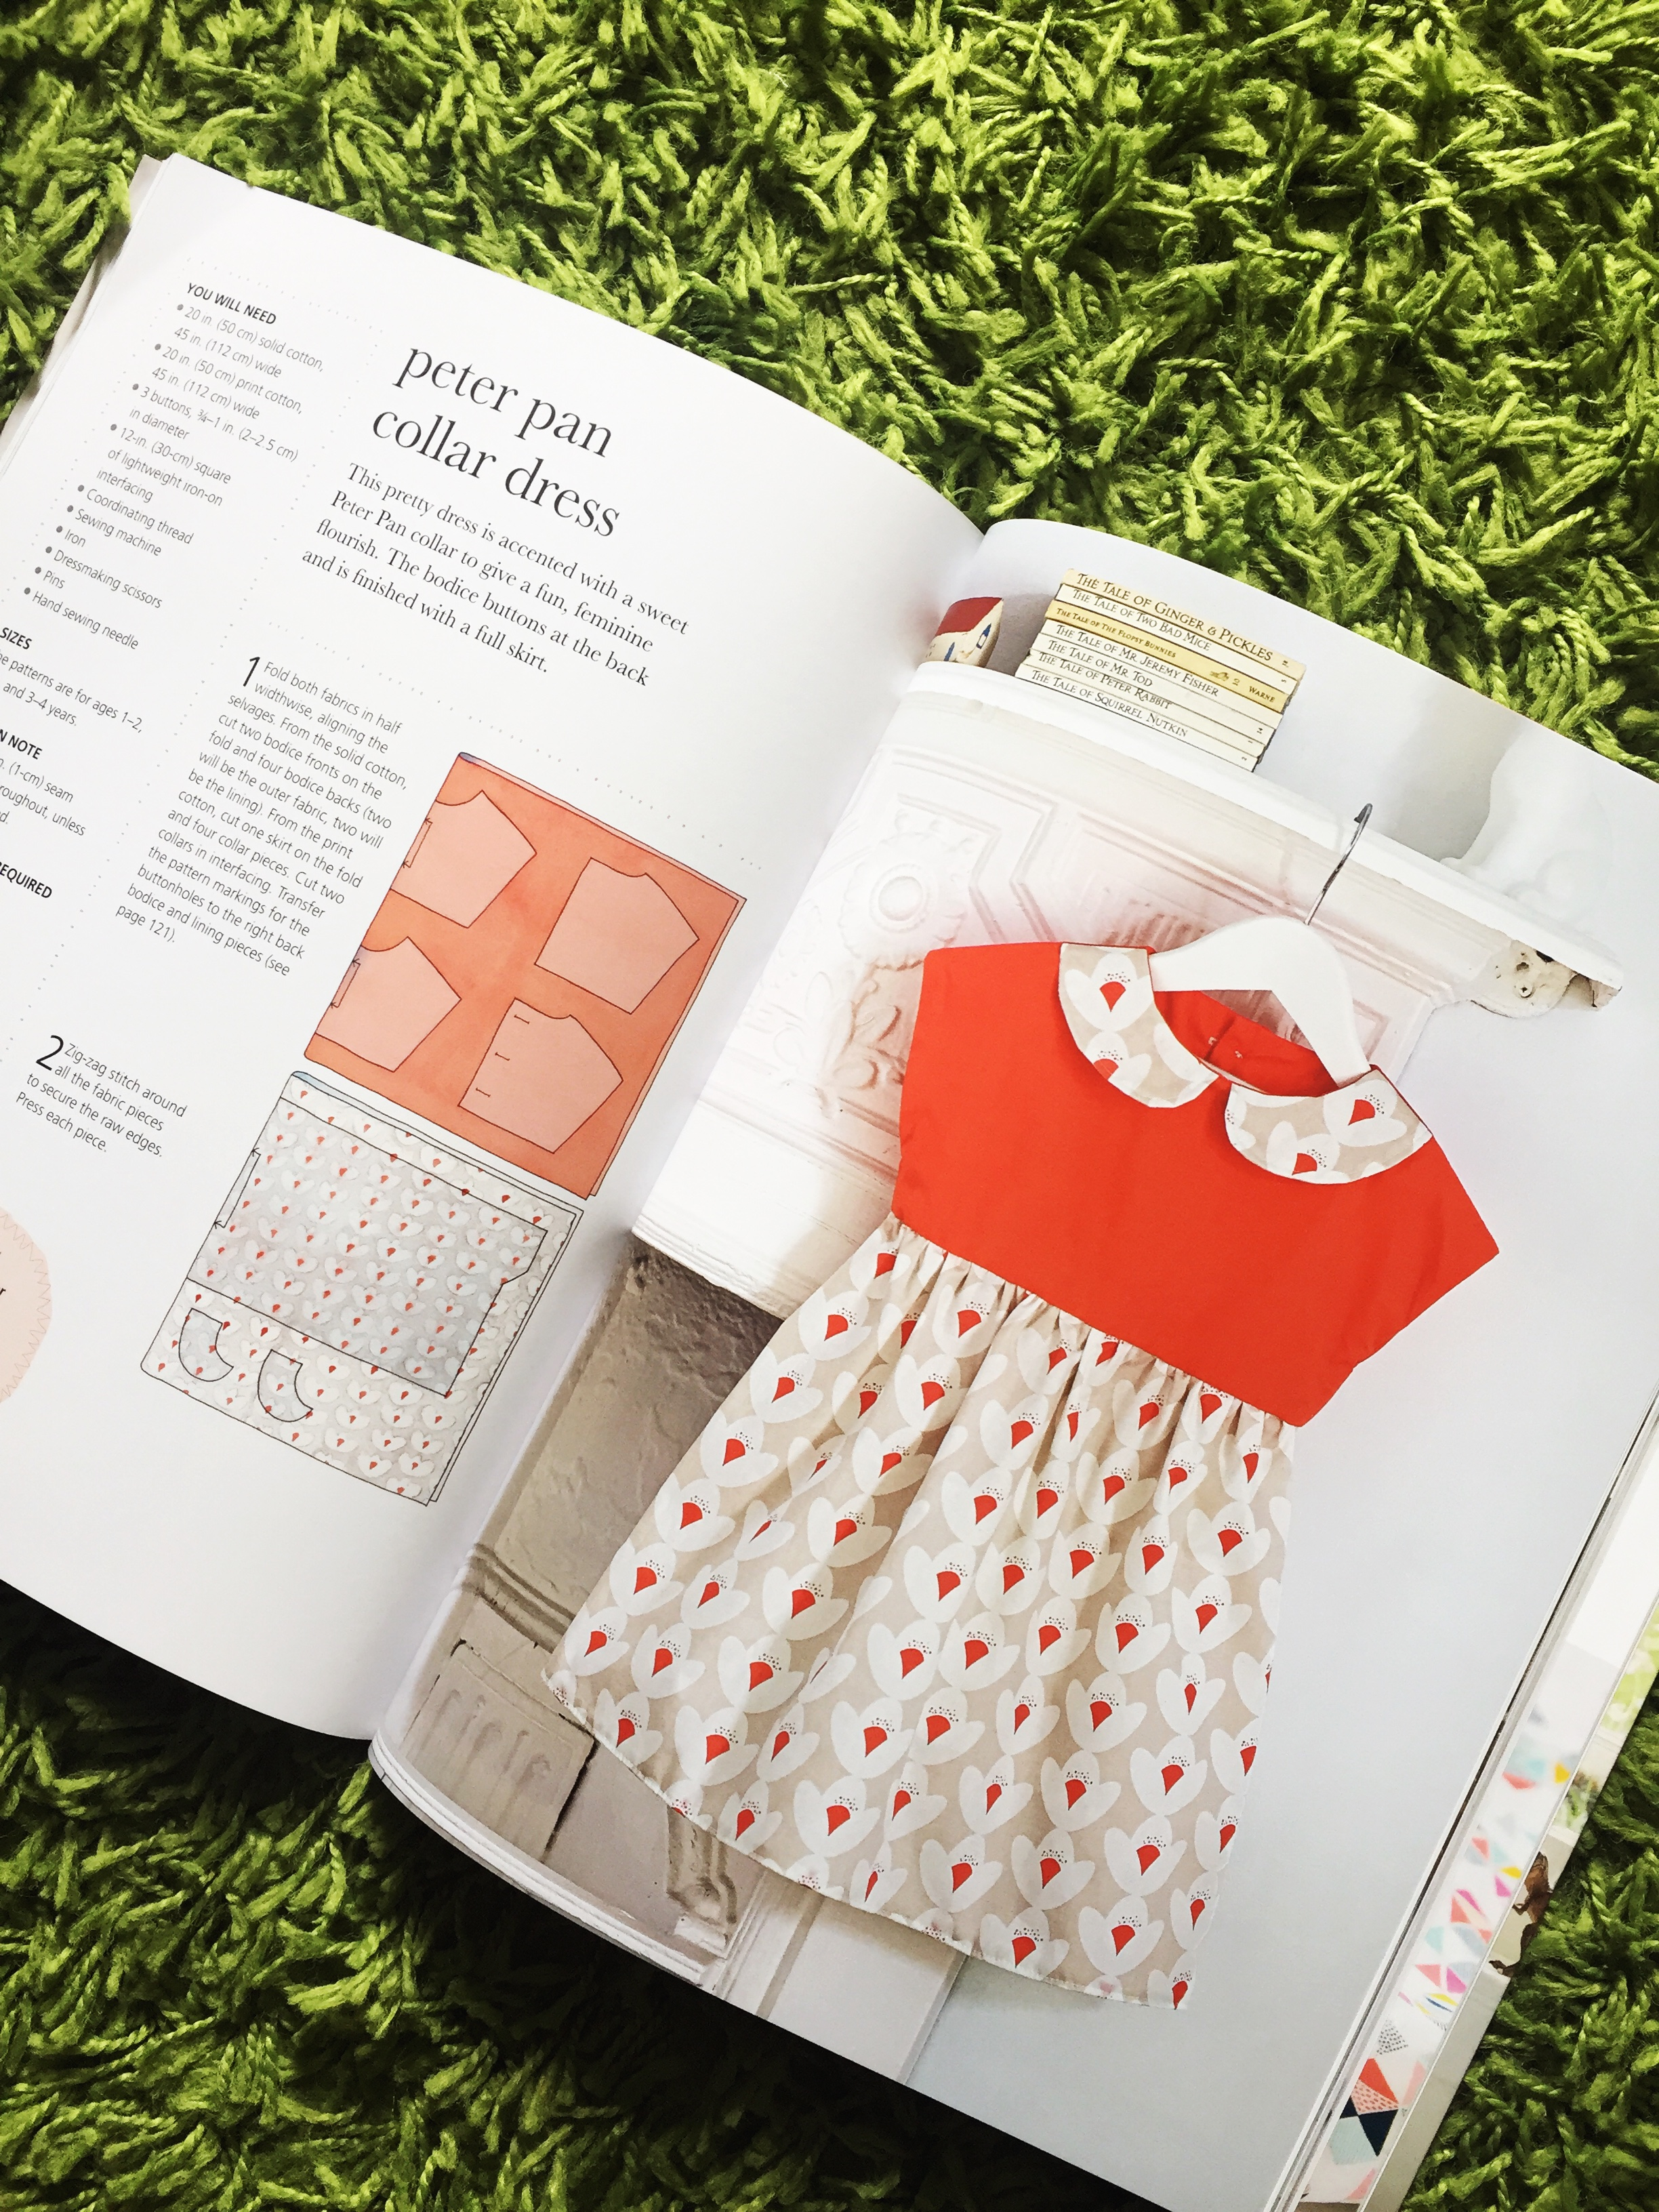 How to sew a beautiful Peter Pan Collar dress!